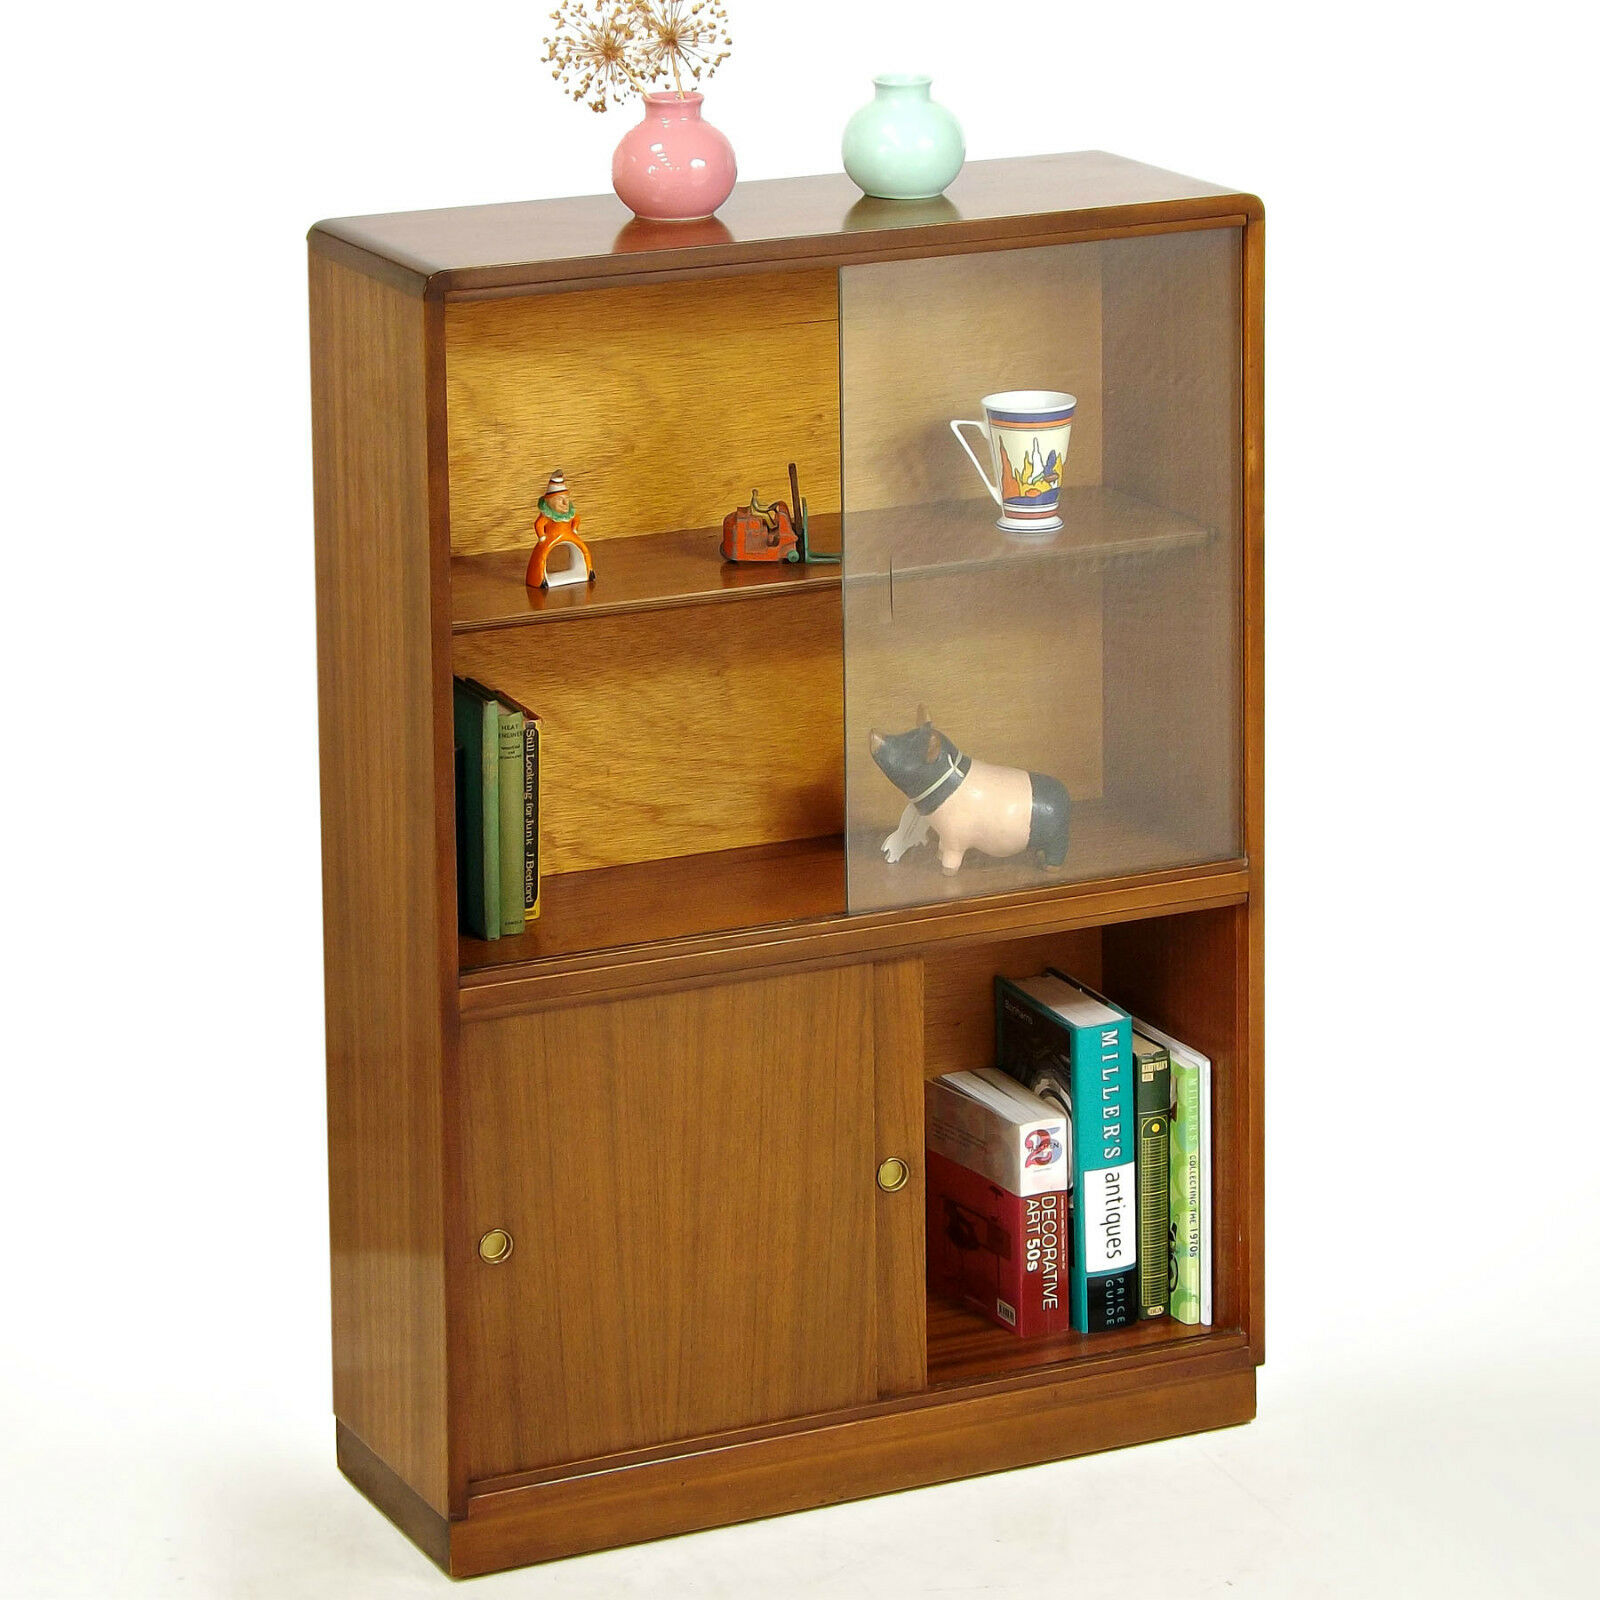 Bookcase / Cabinet - Glazed, Teak, Roseberry, 1960s, Retro (delivery available)